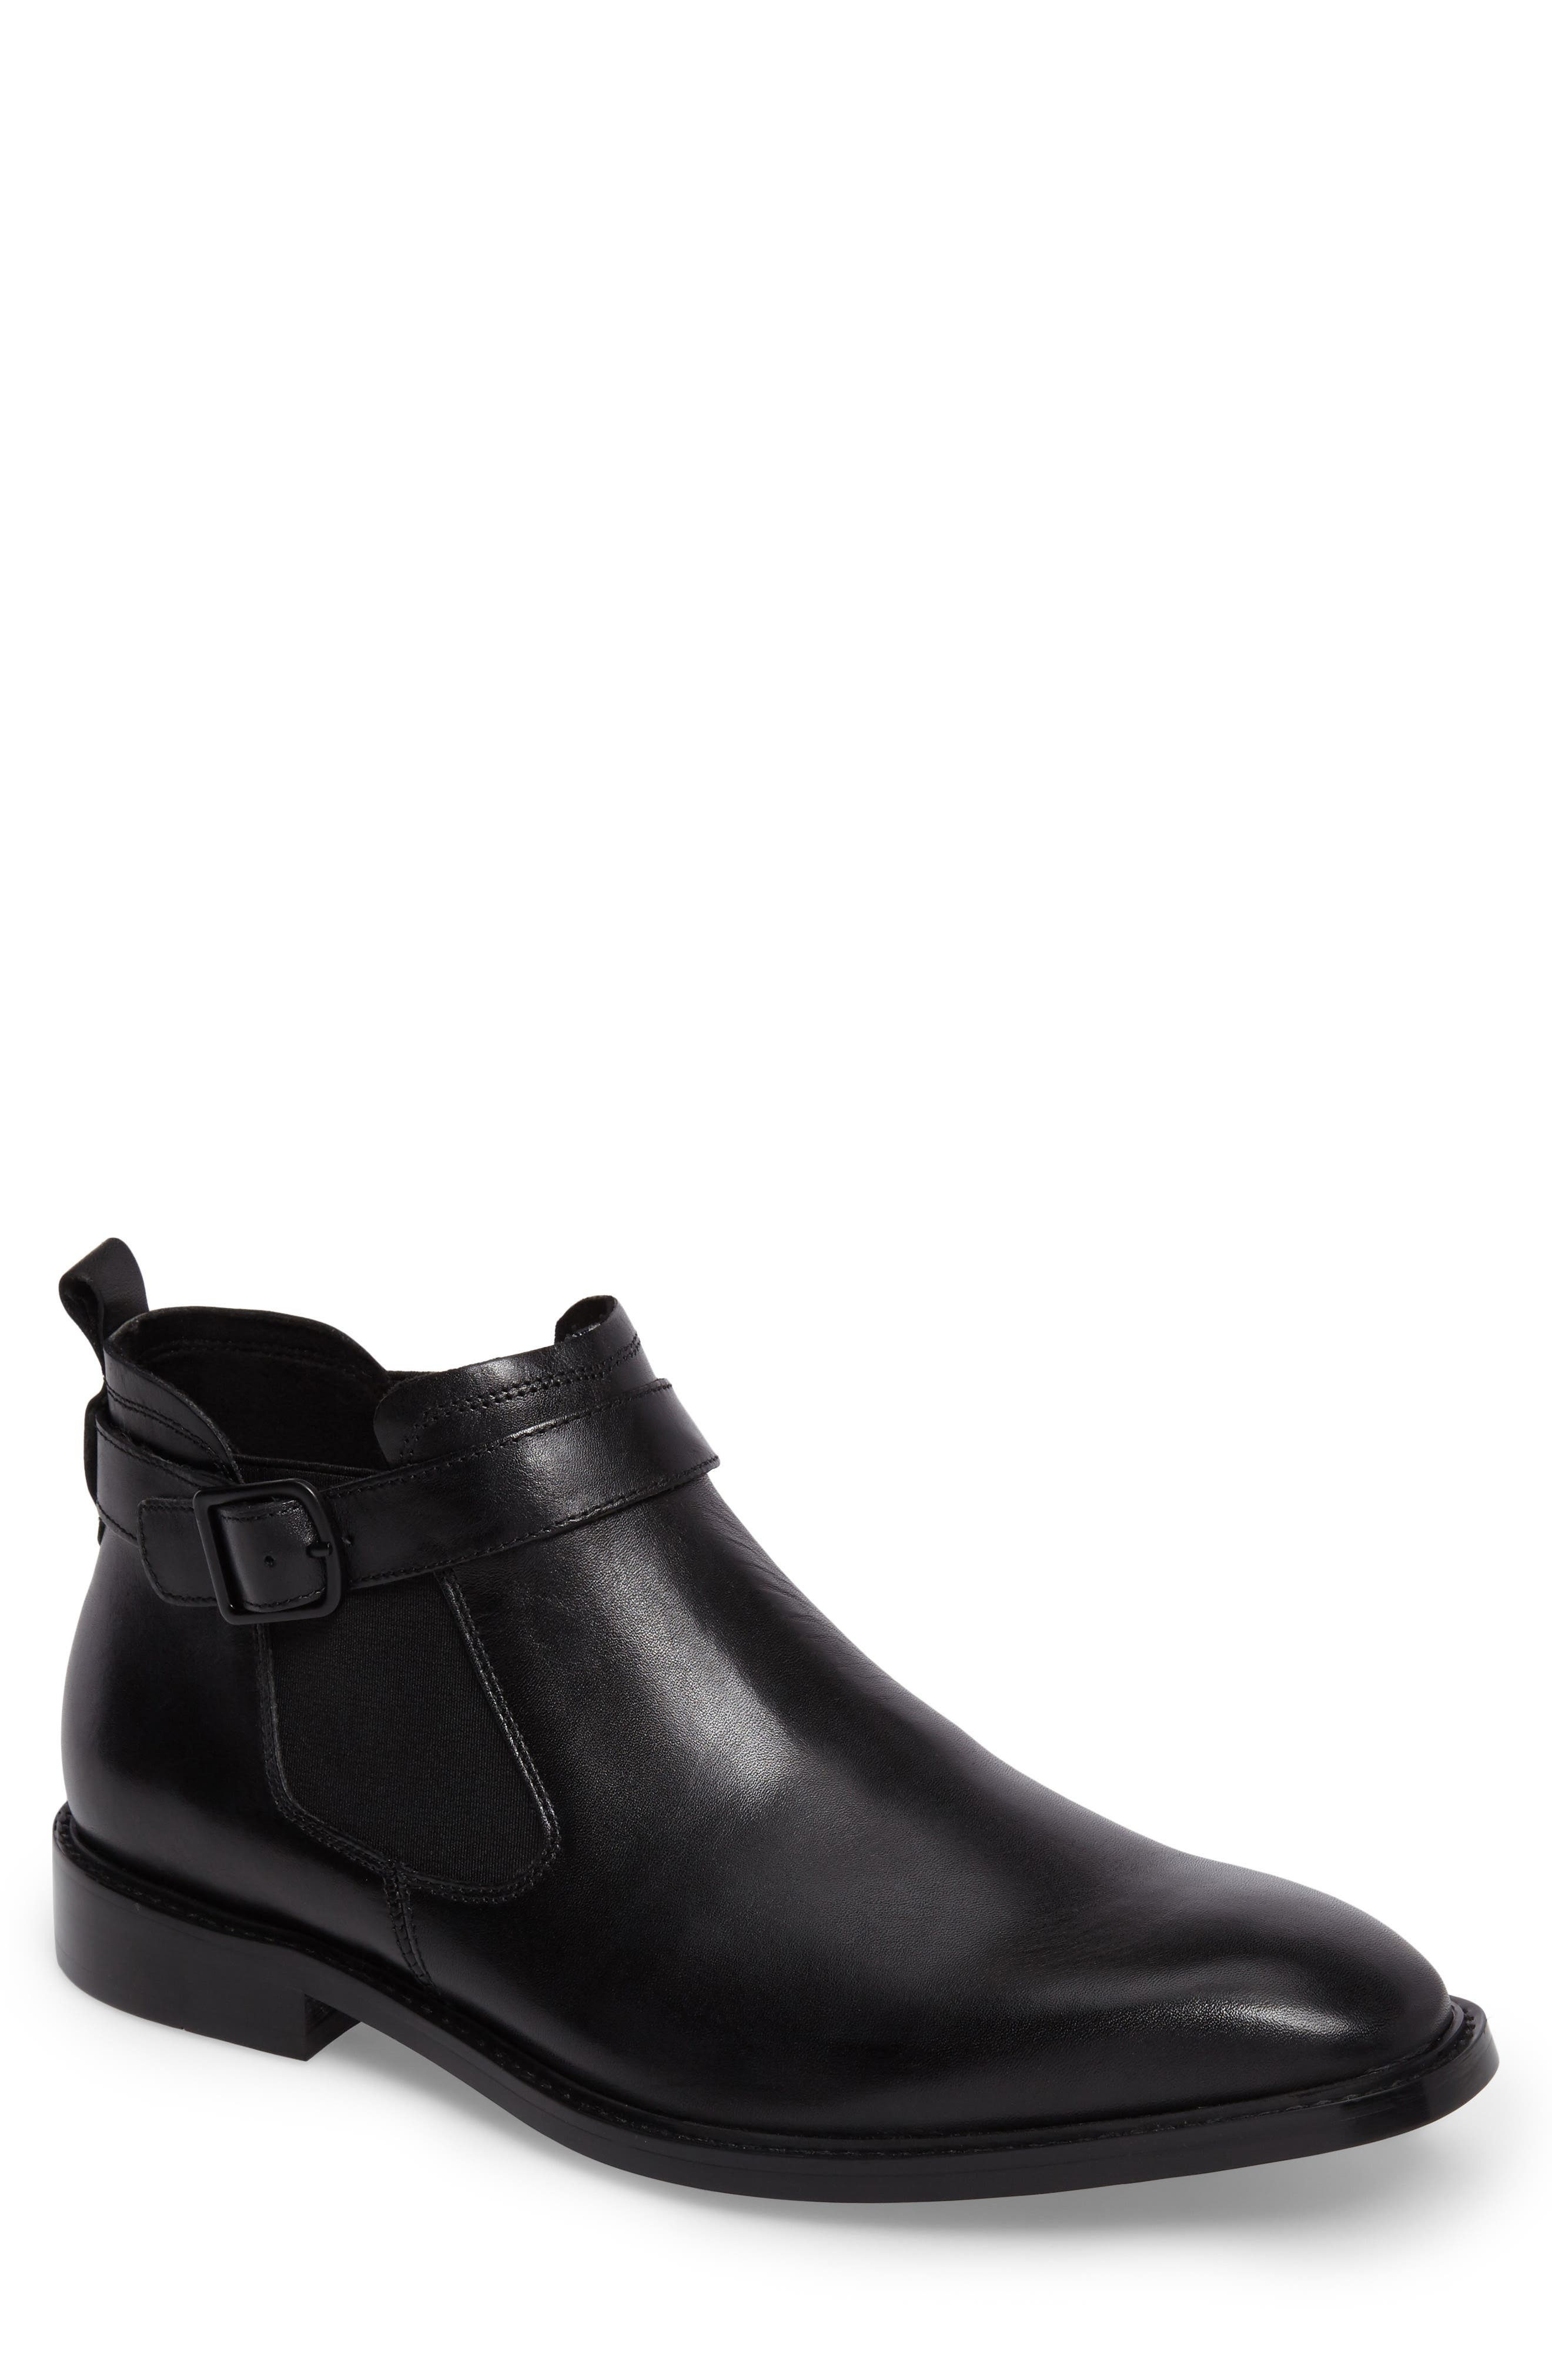 'Sum-Times' Chelsea Boot,                         Main,                         color, Black Leather